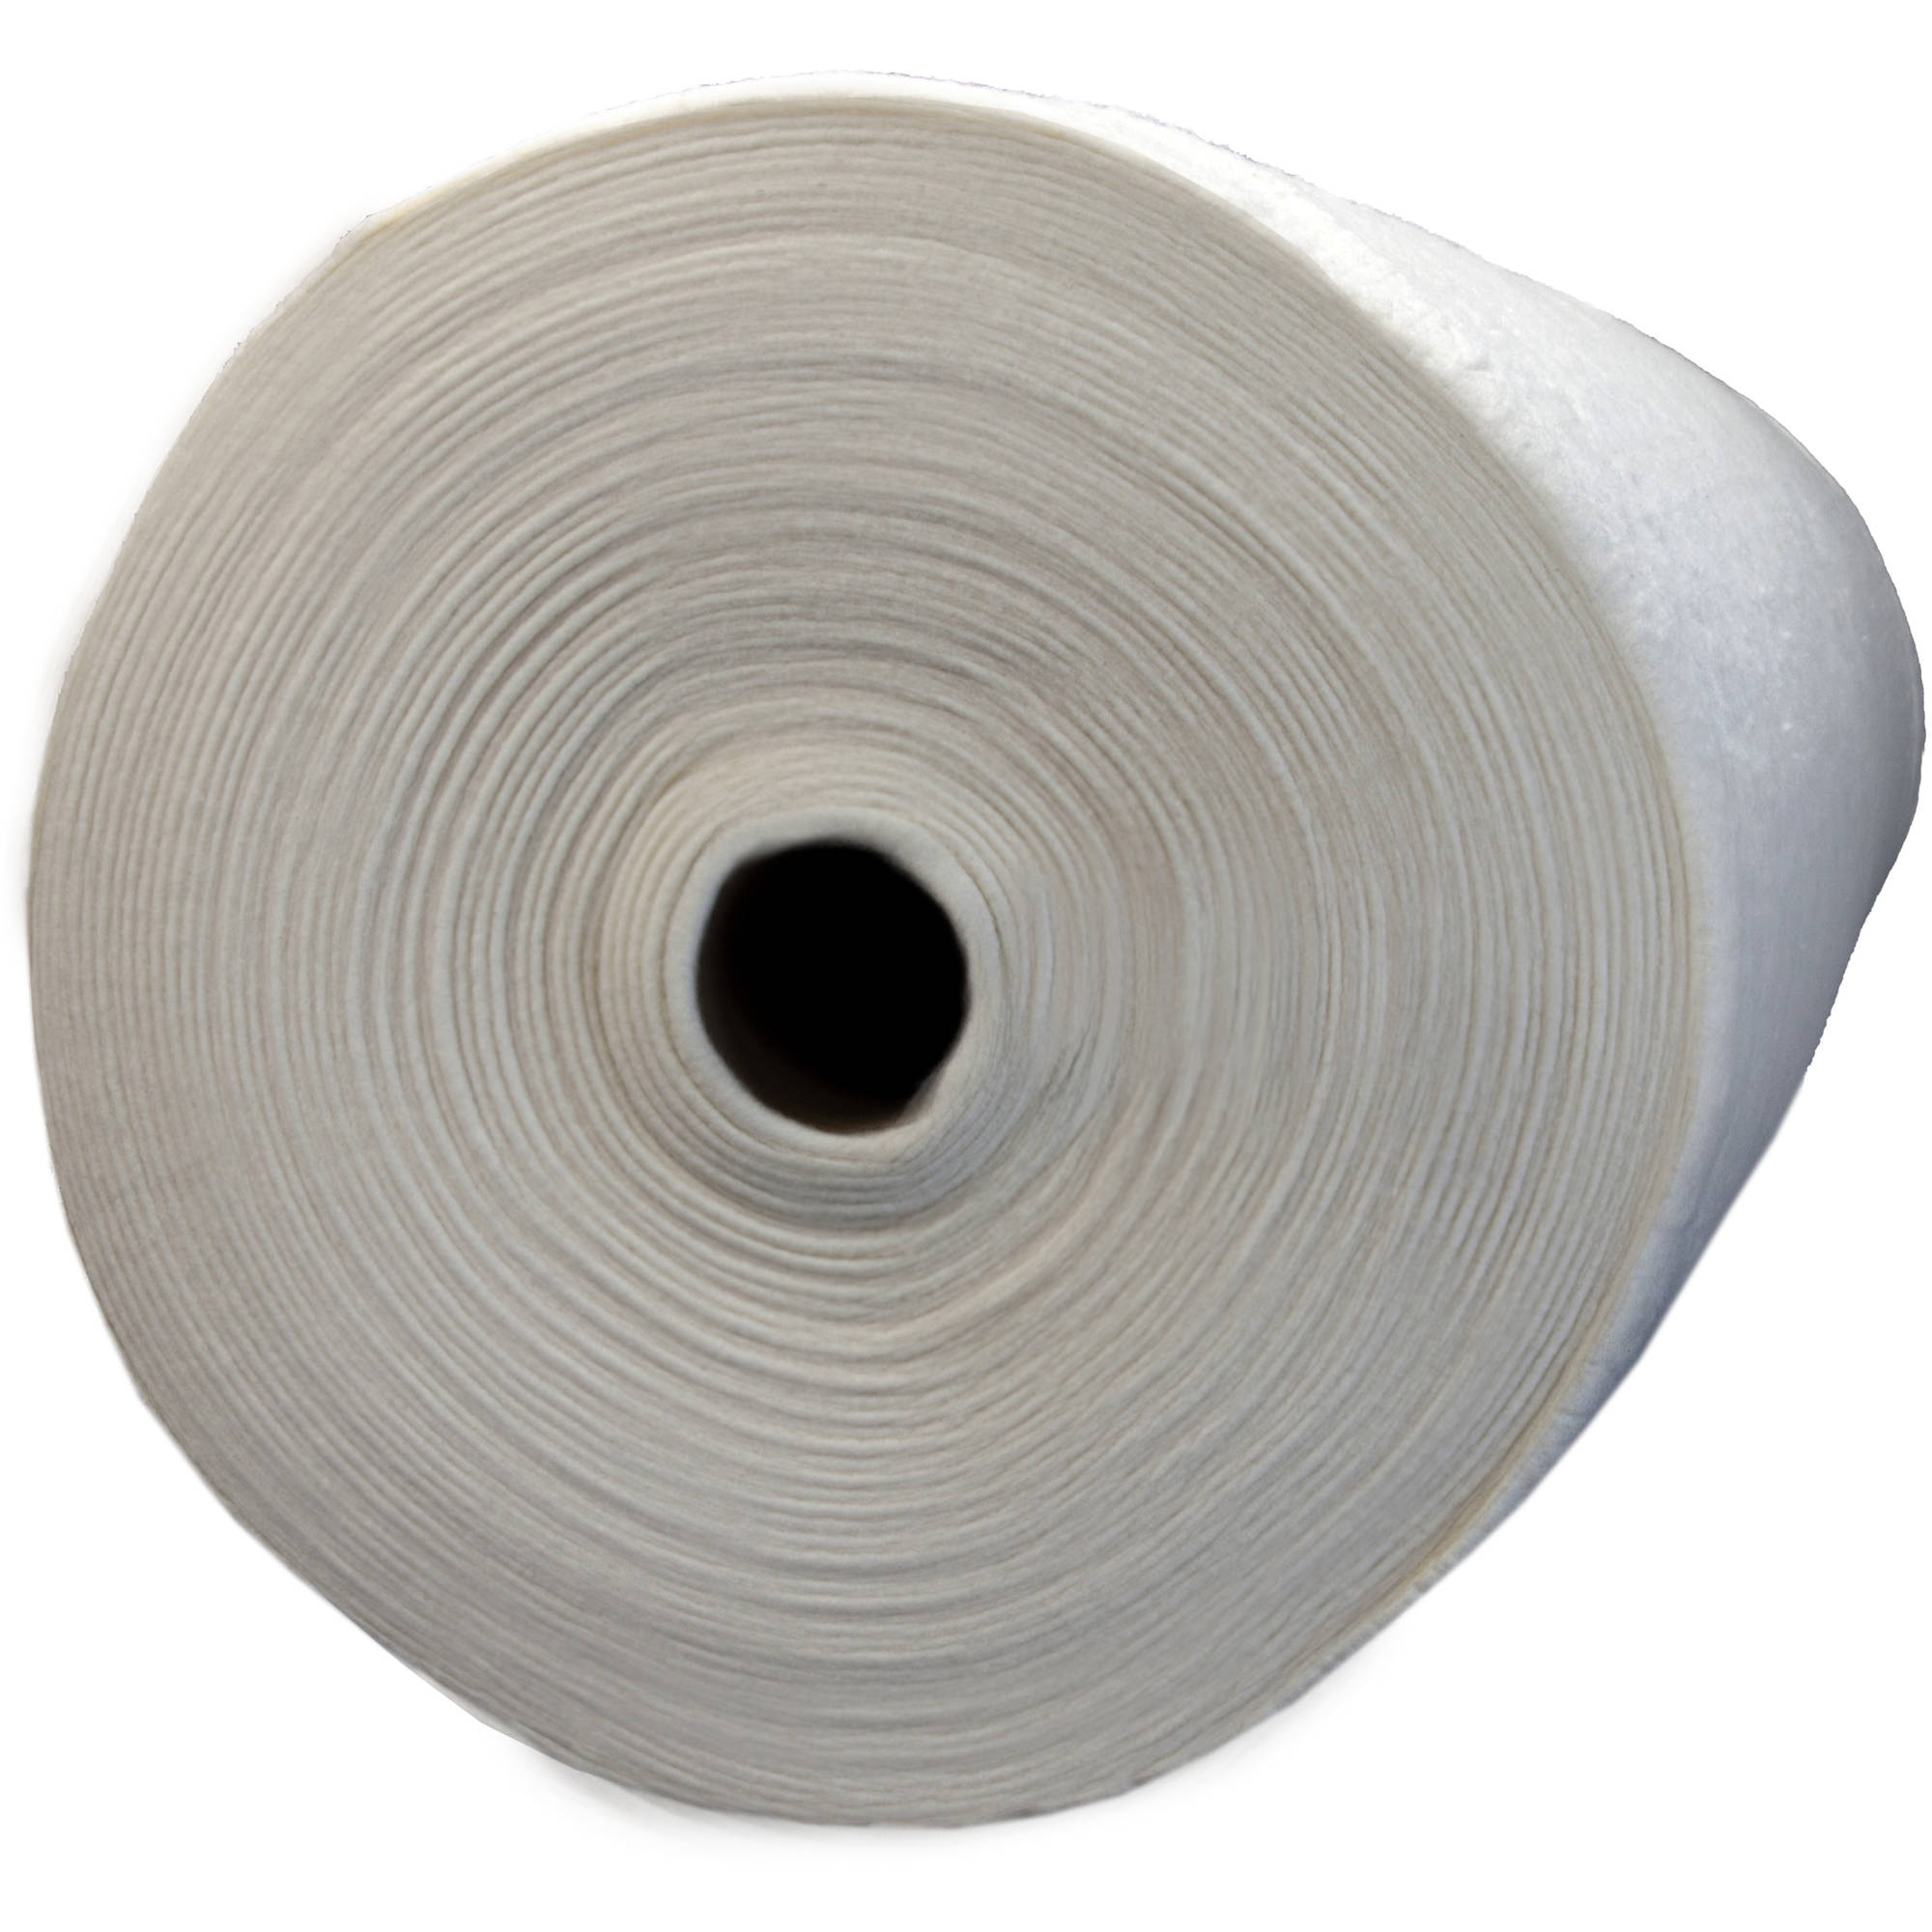 """Pellon Natures Touch Natural Blend 80/20 Batting with Scrim, 96"""" Wide, 30 Yard Roll"""